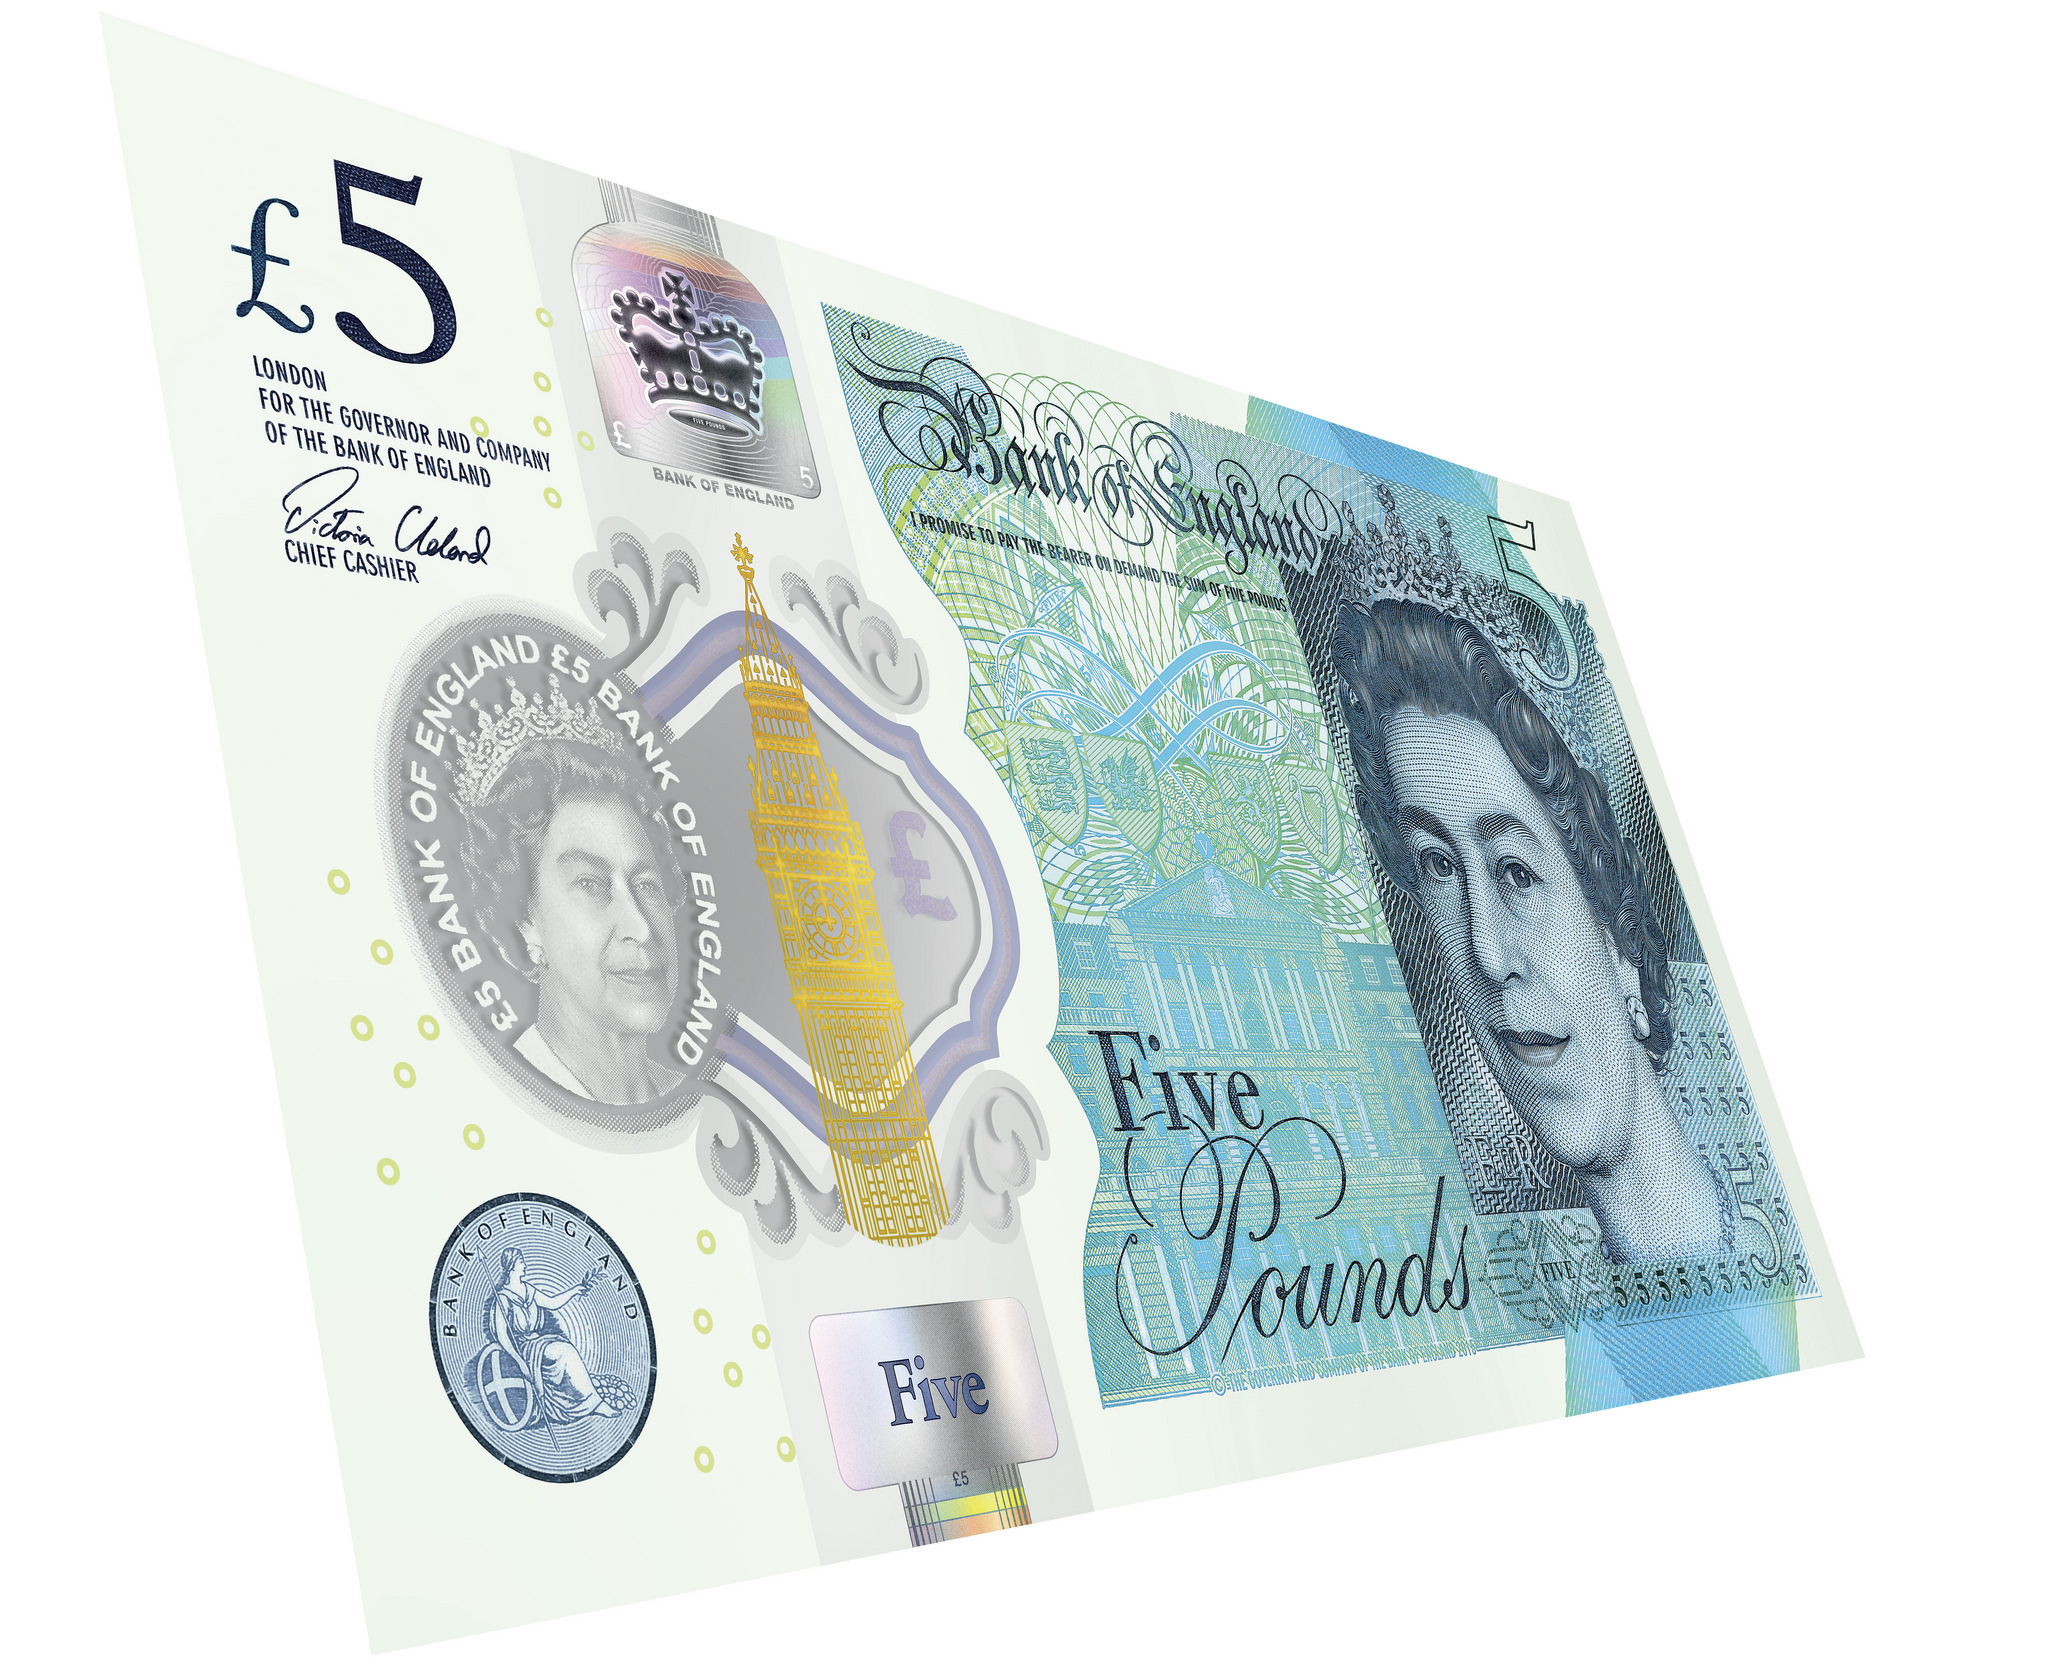 One week to go for old fivers as legal tender